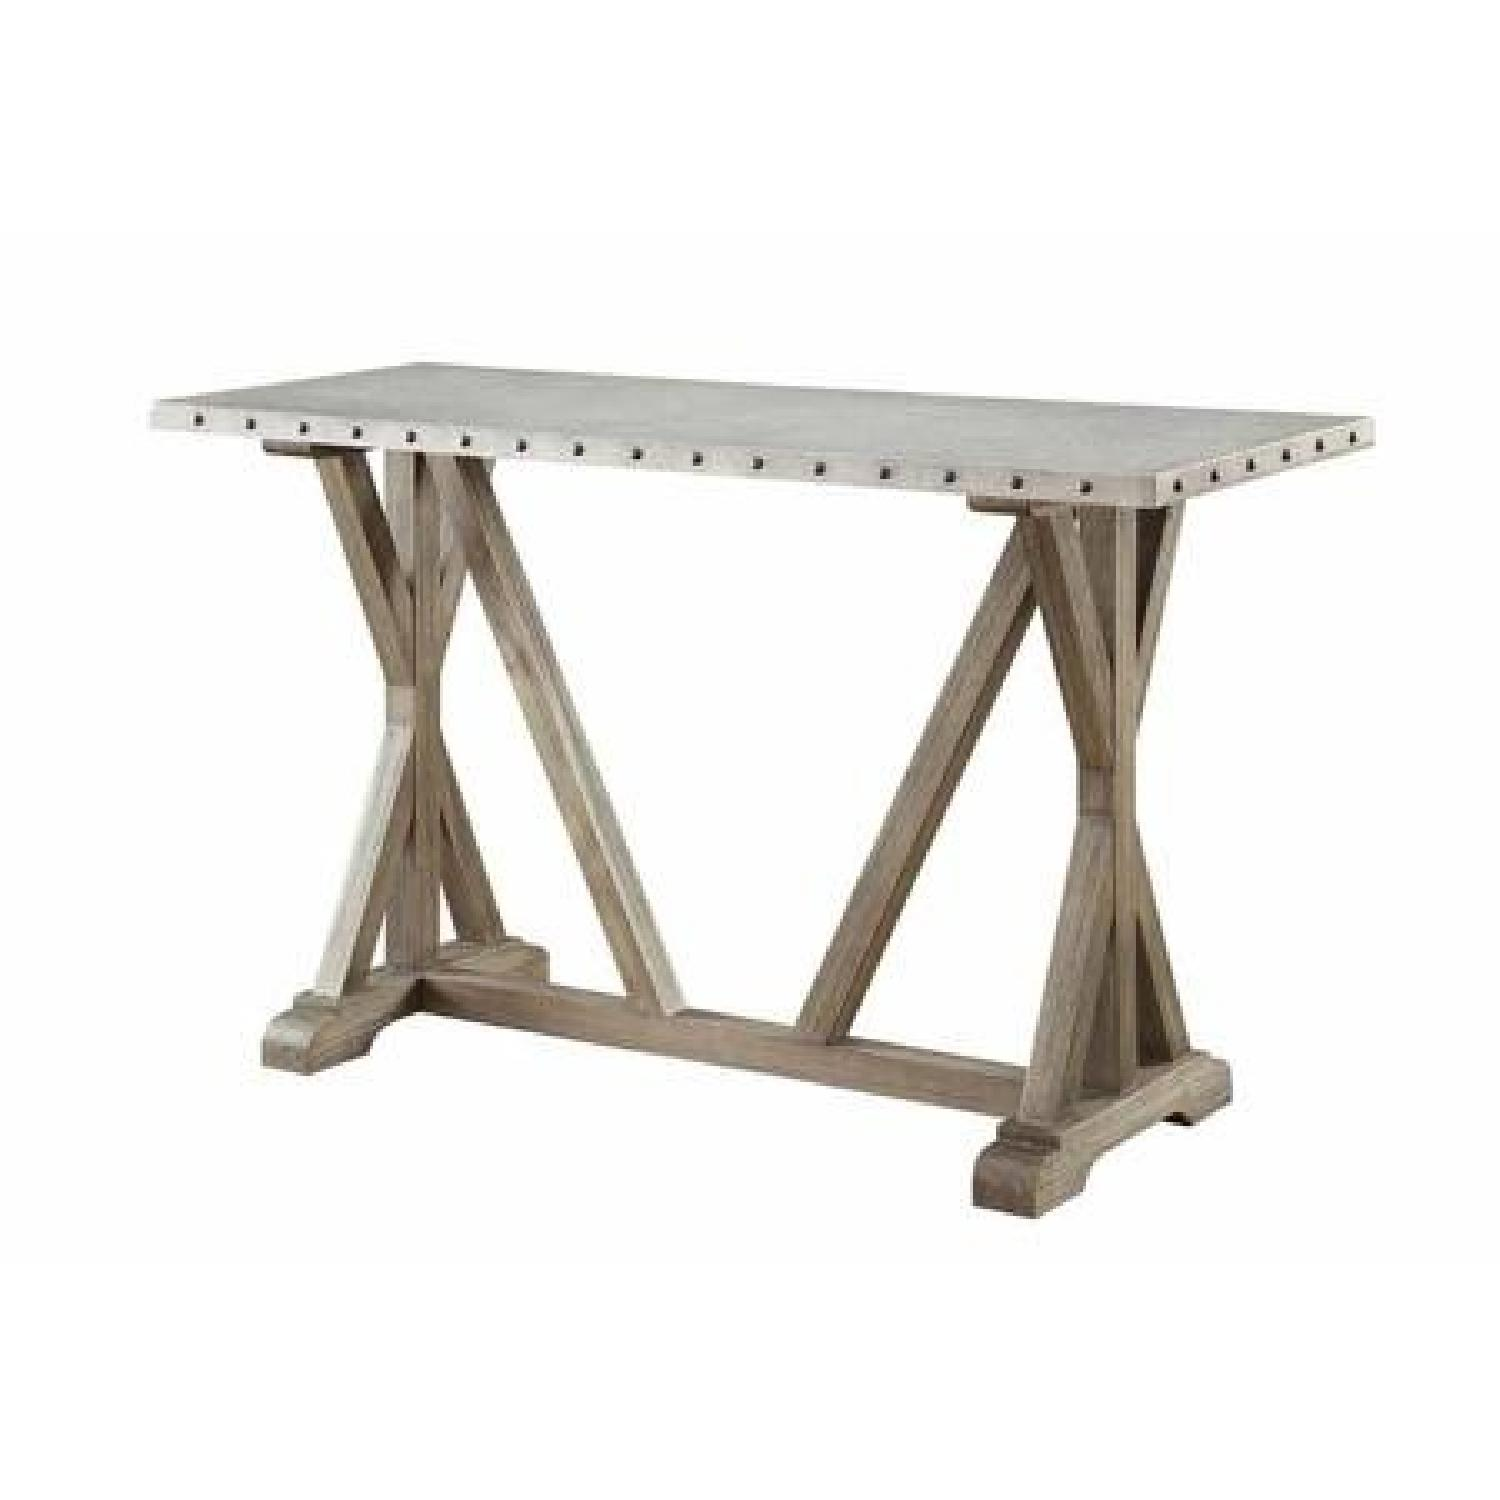 Rustic Industrial Style CoffeeTable